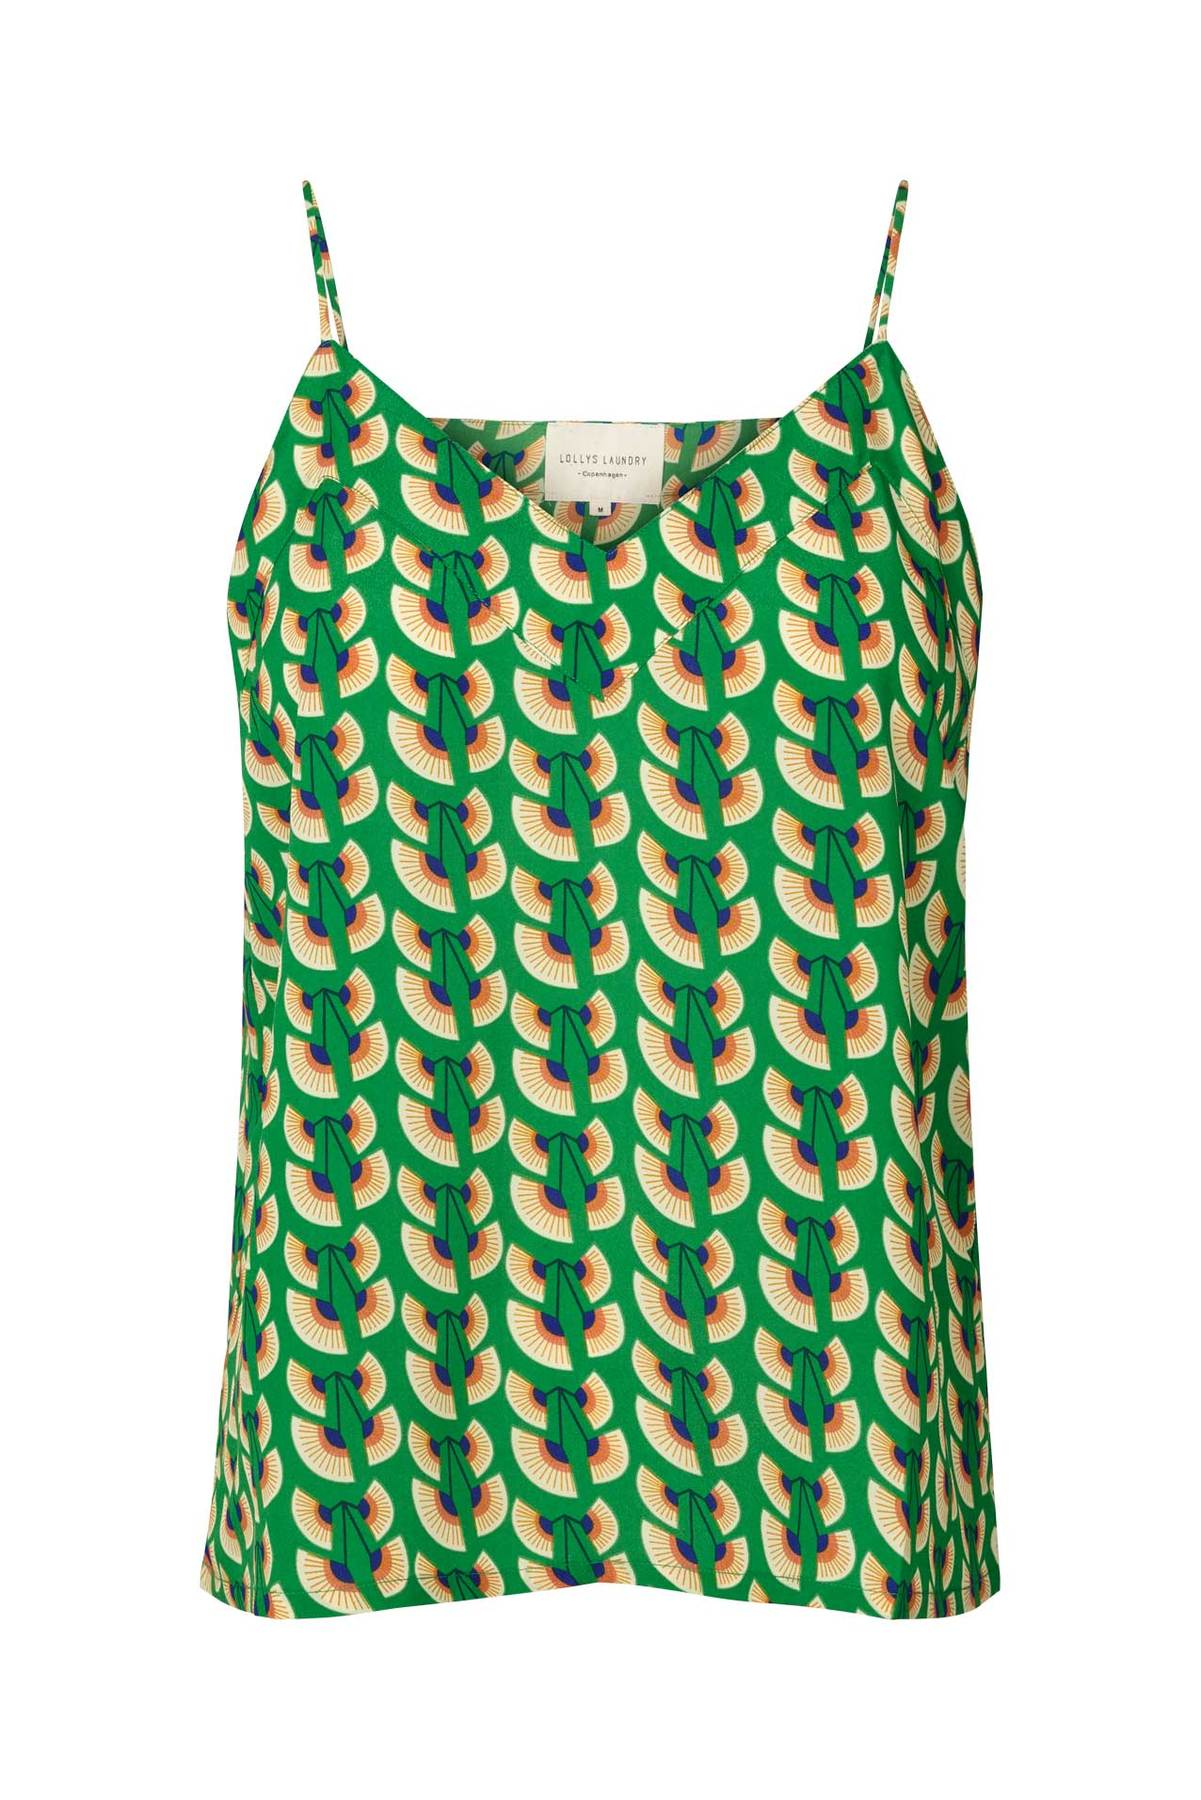 Harbo Top in Green